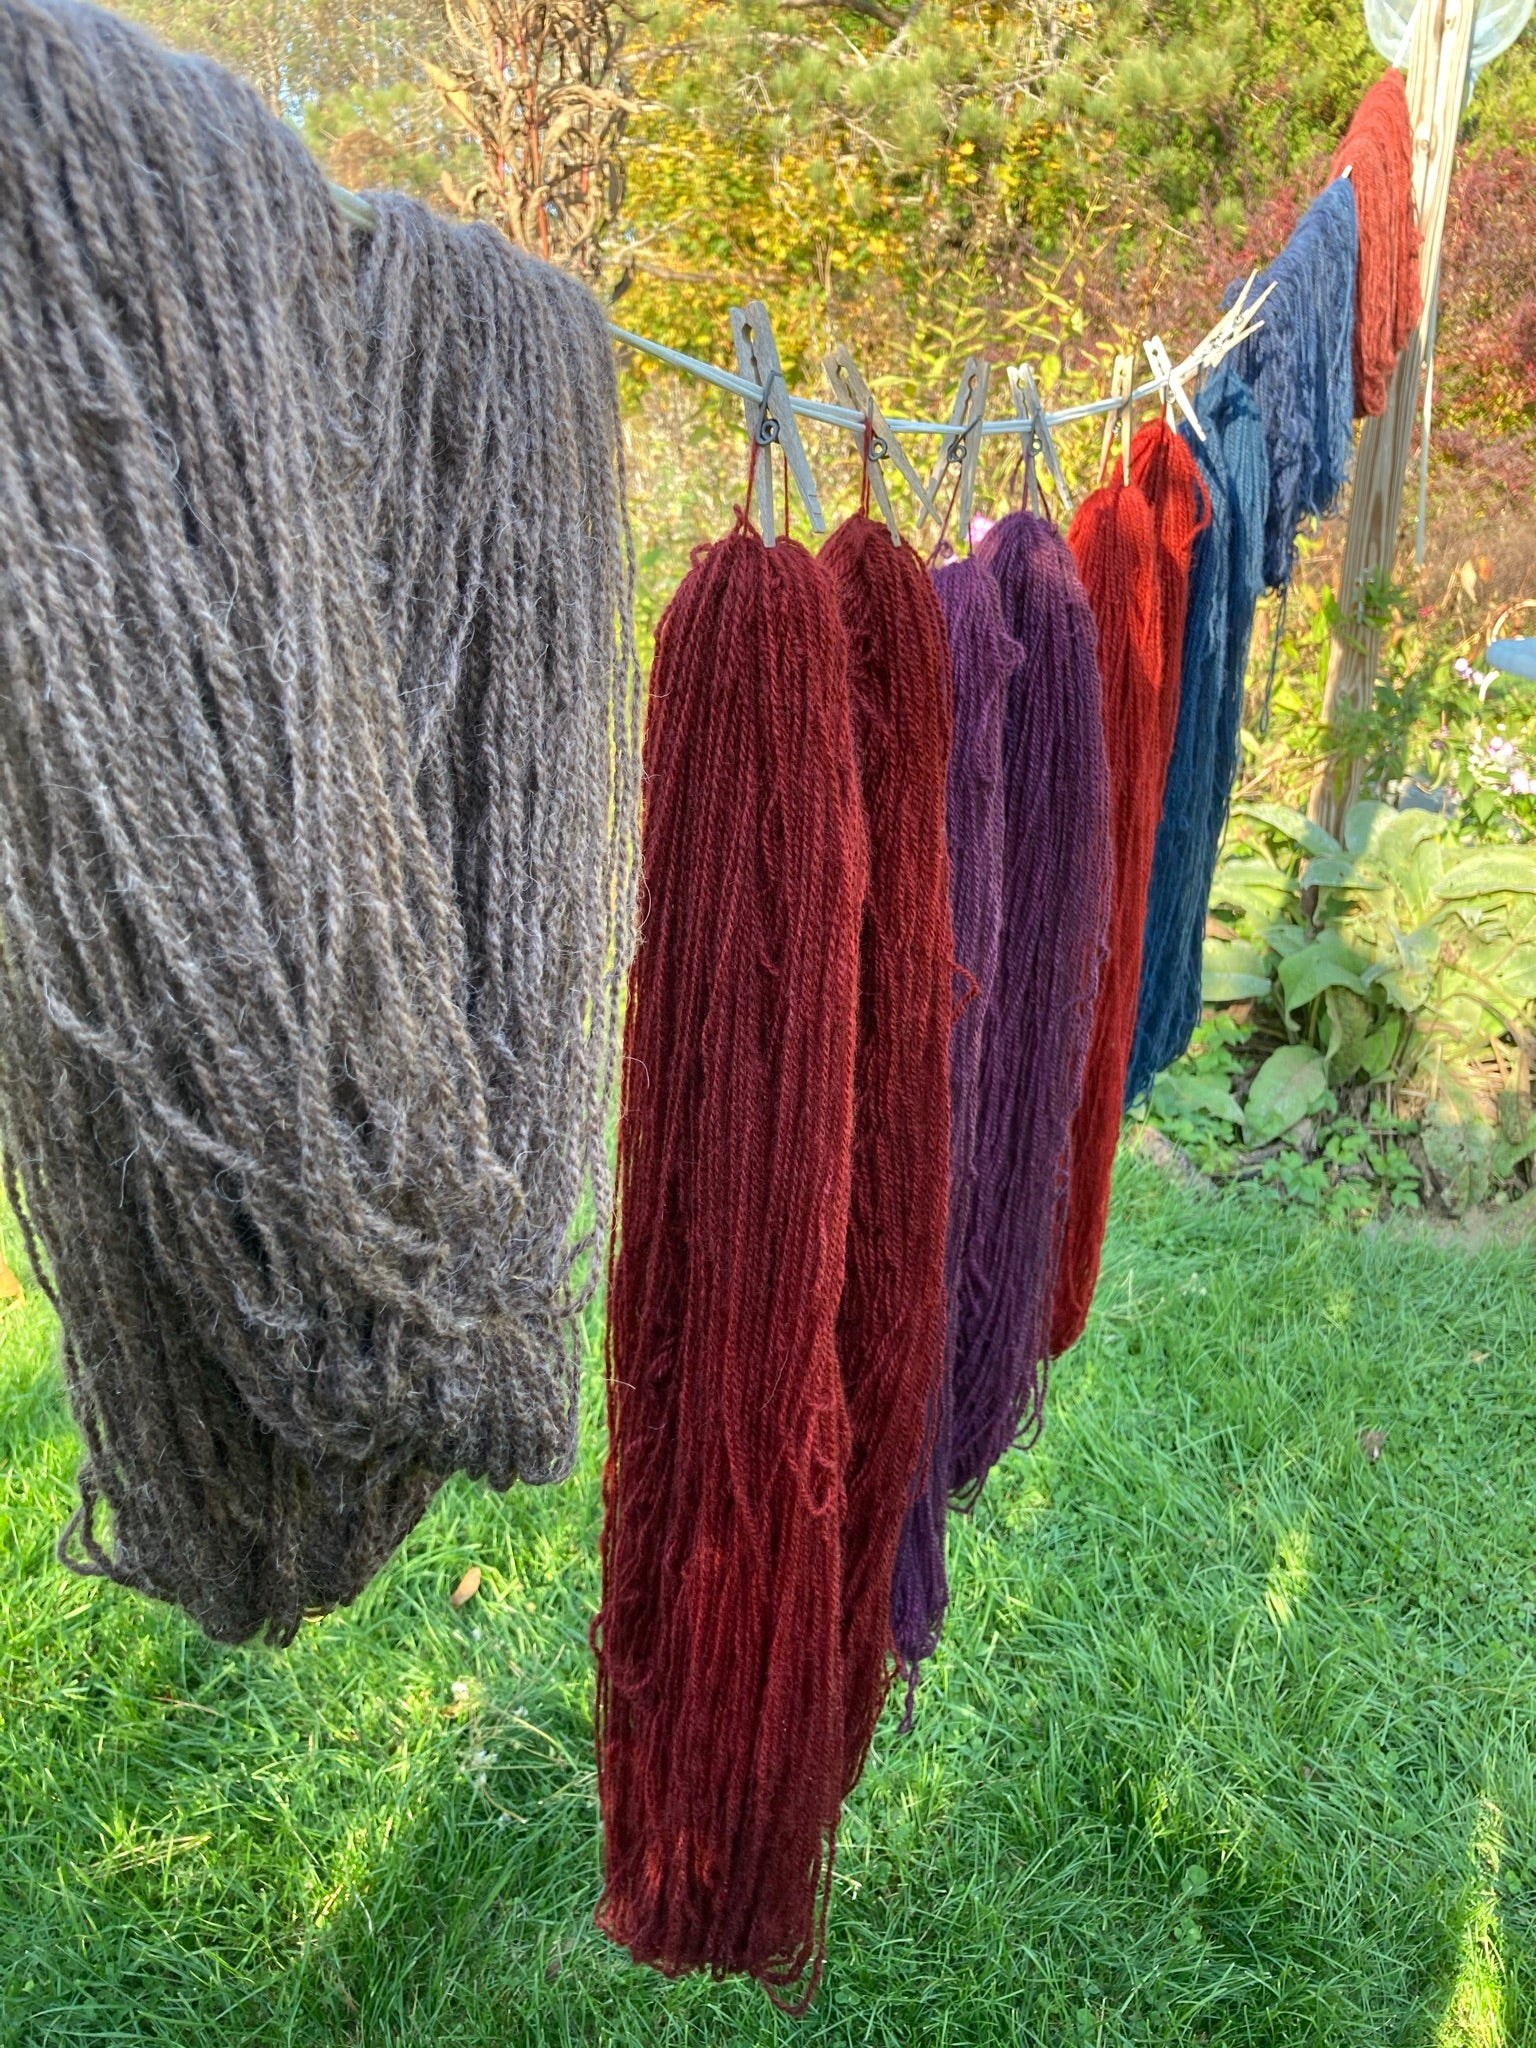 Down Home Maine Hand Dyed Yarn